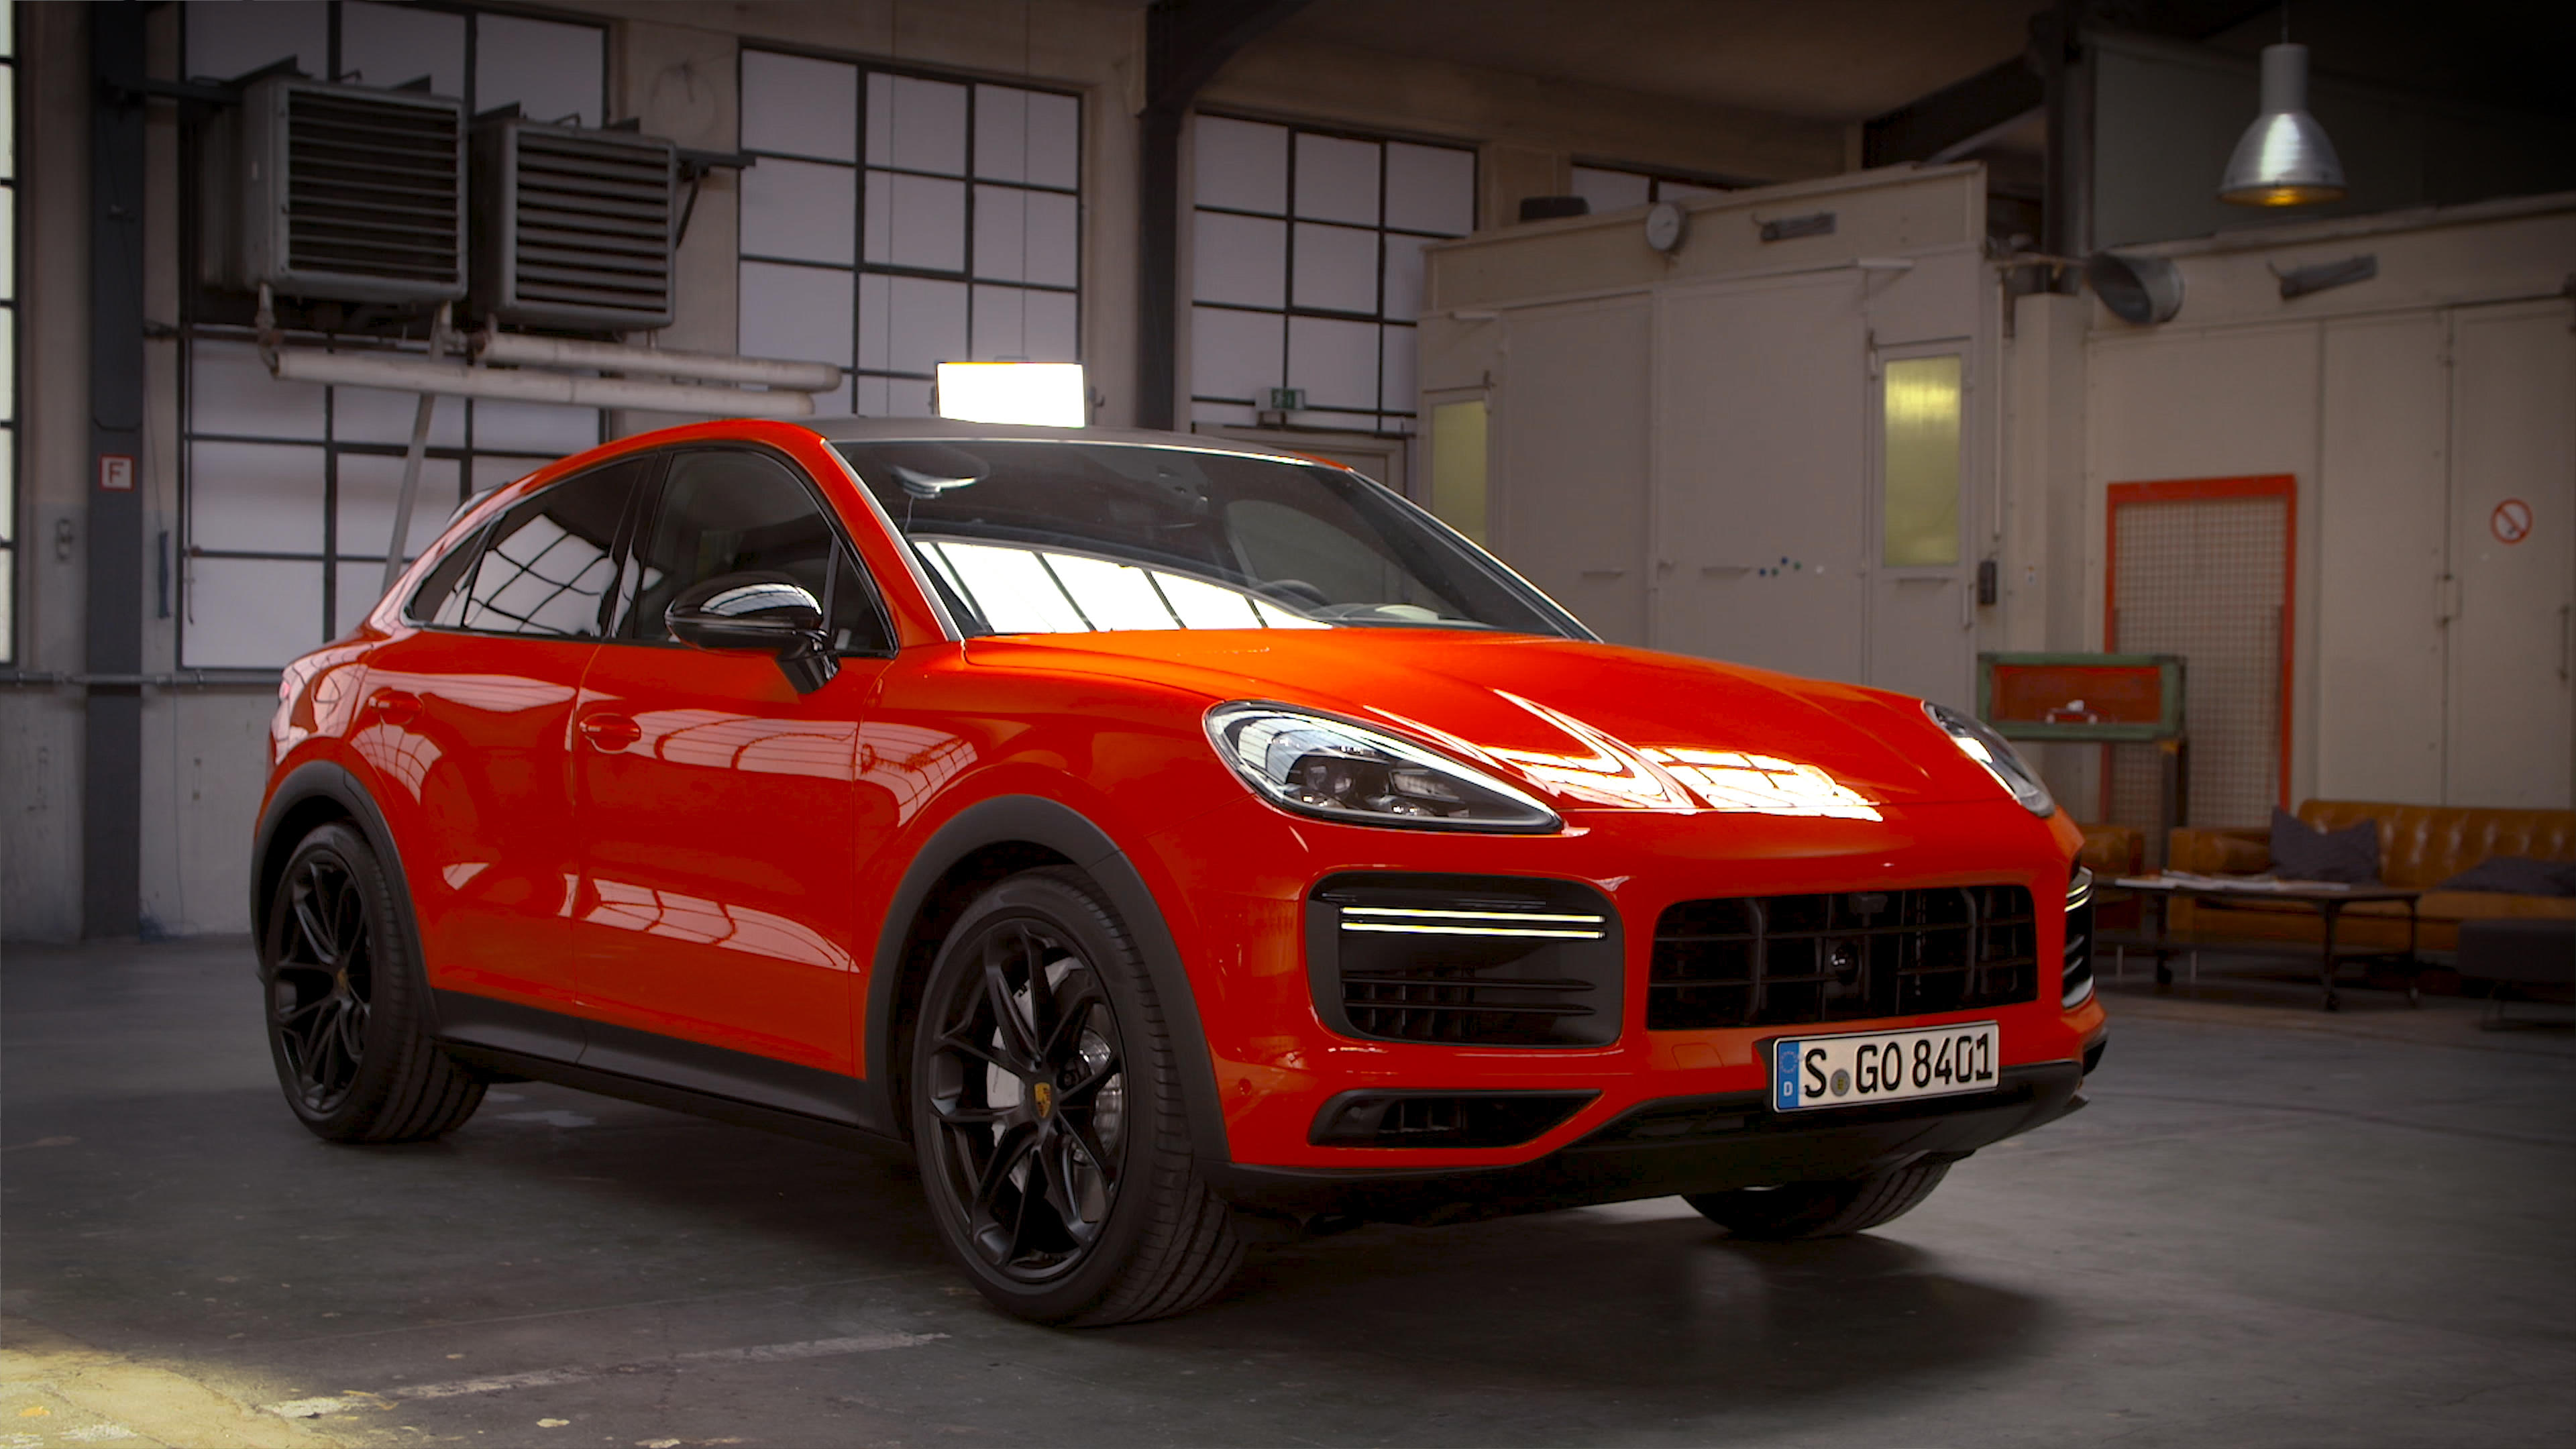 Video: 5 things you need to know about the 2020 Porsche Cayenne Coupe